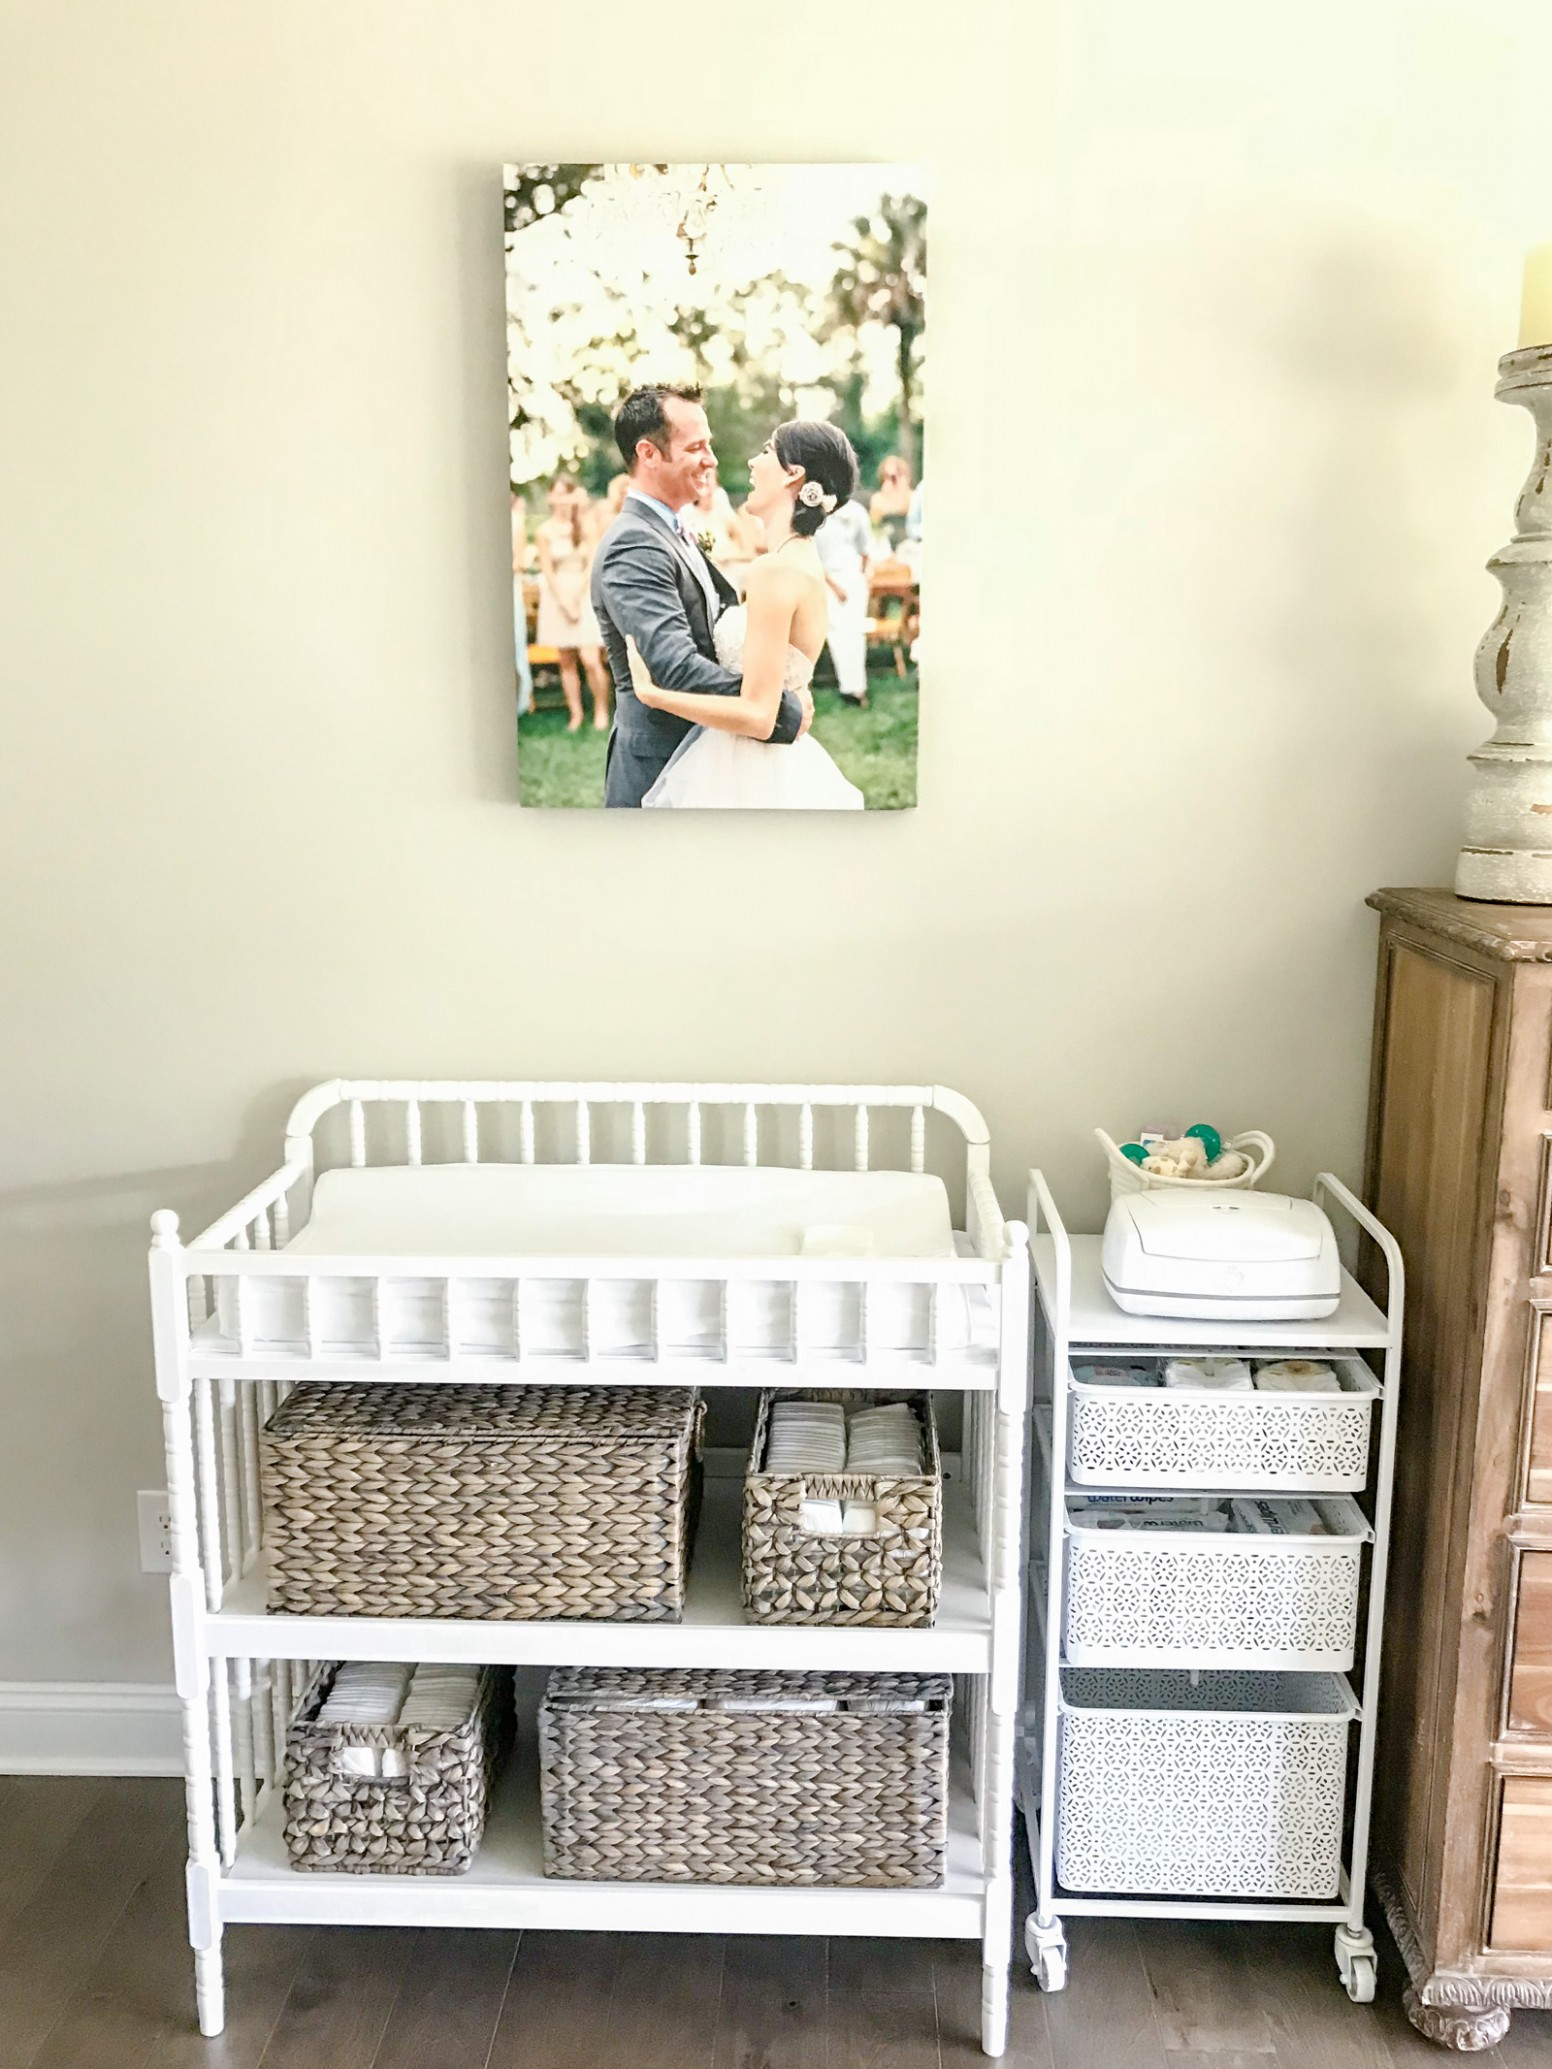 Must Haves for Mom of 9  Preparing for a New Baby with Babies! - Baby Room Must Haves